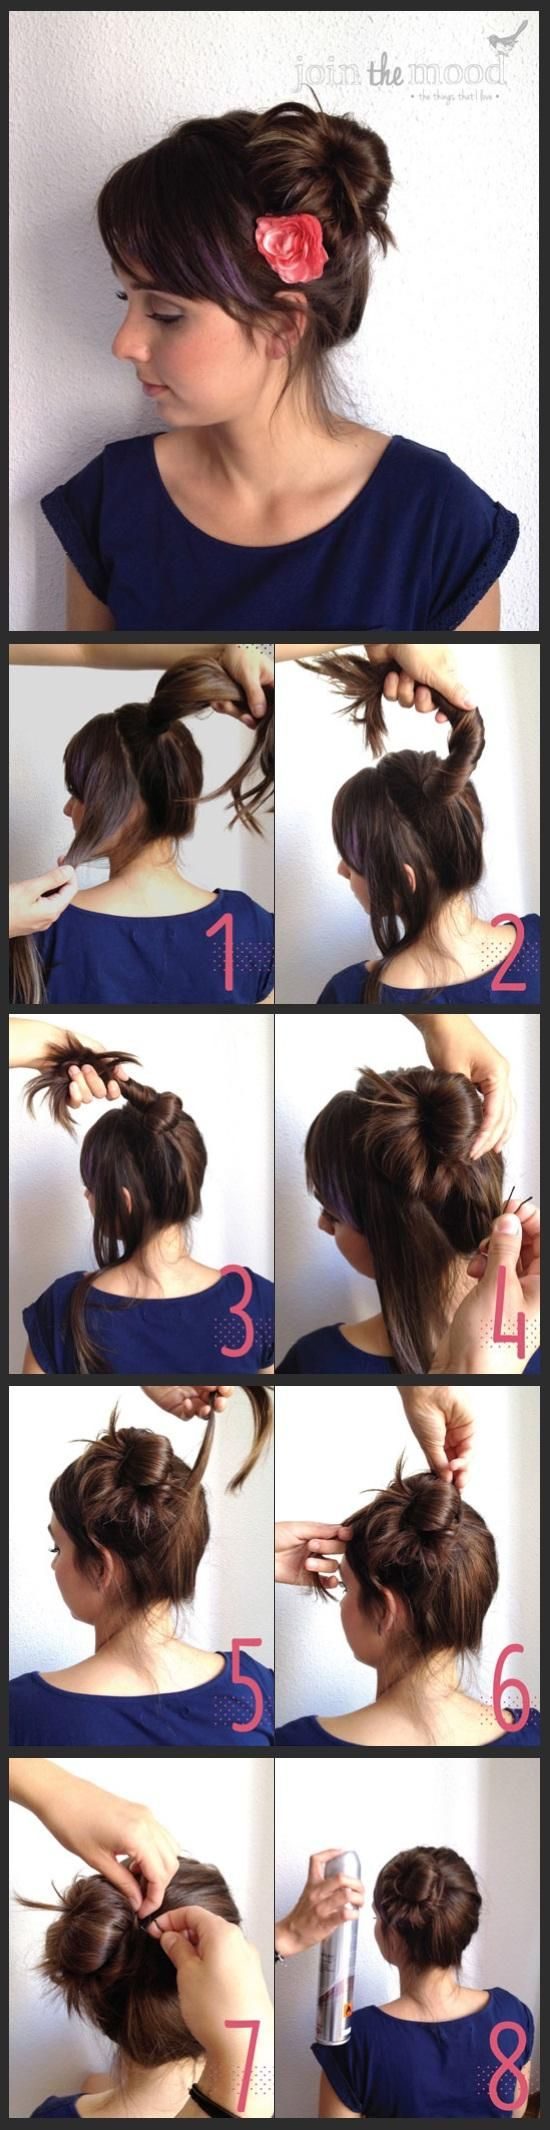 How To Do a Messy Side Bun - Hairstyles and Beauty Tips